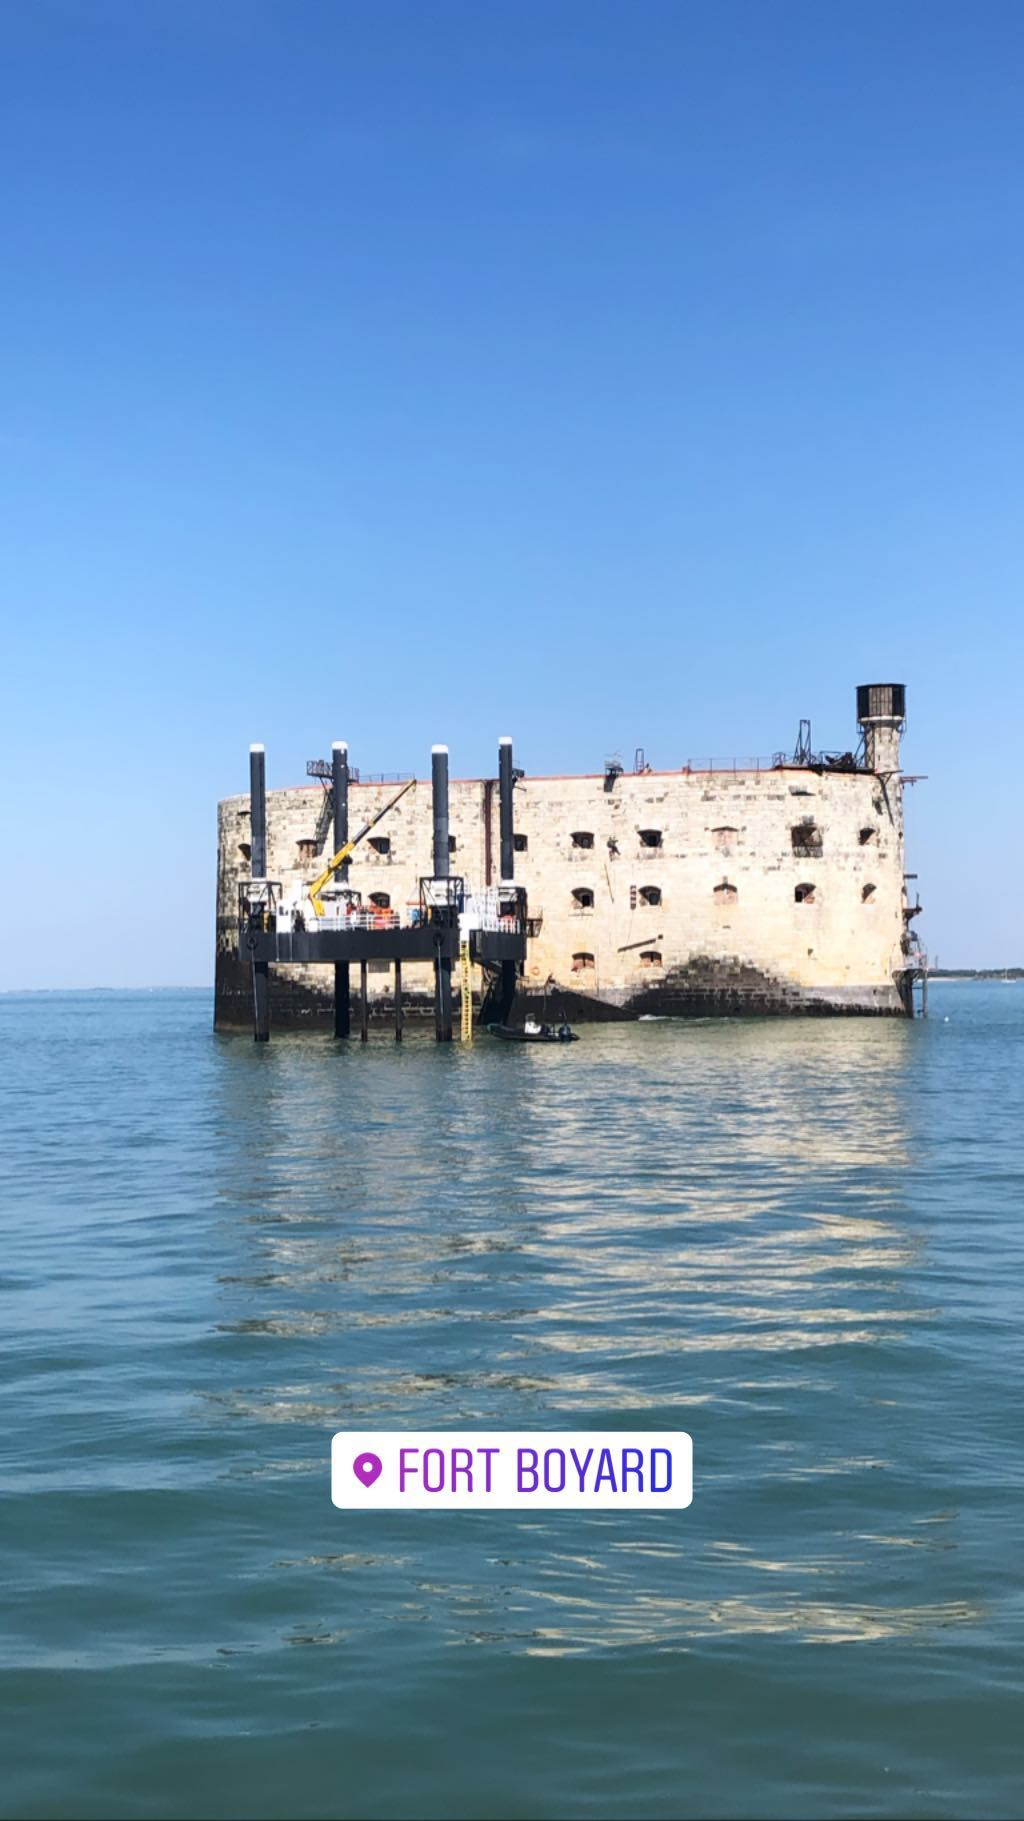 Photos divers de Fort Boyard 2019 (internautes + hors production) - Page 6 56660110